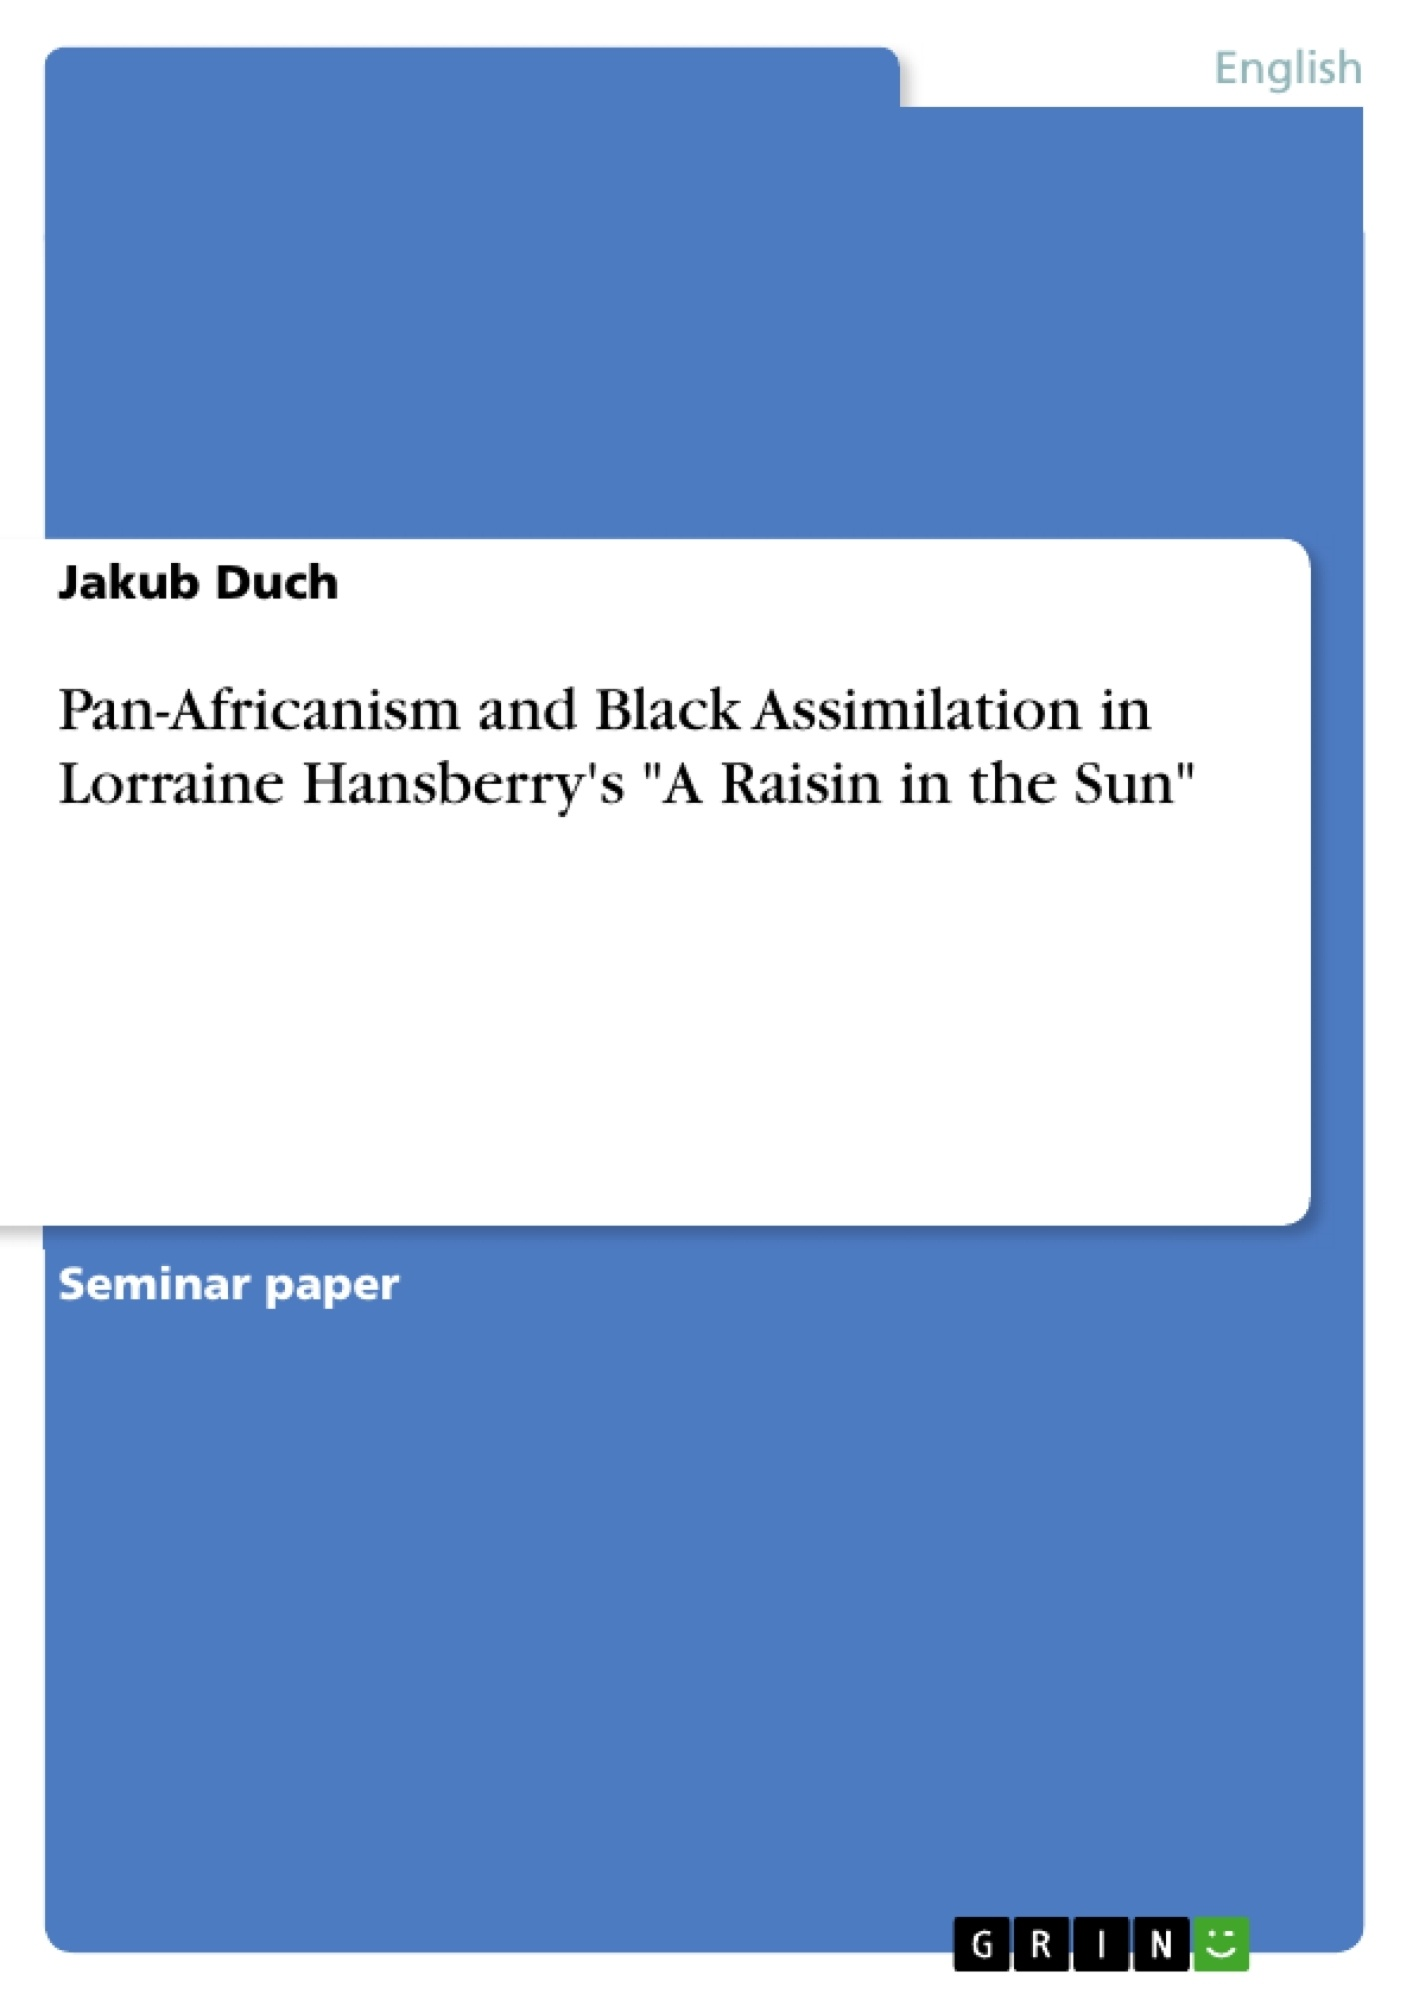 """Title: Pan-Africanism and Black Assimilation in Lorraine Hansberry's """"A Raisin in the Sun"""""""